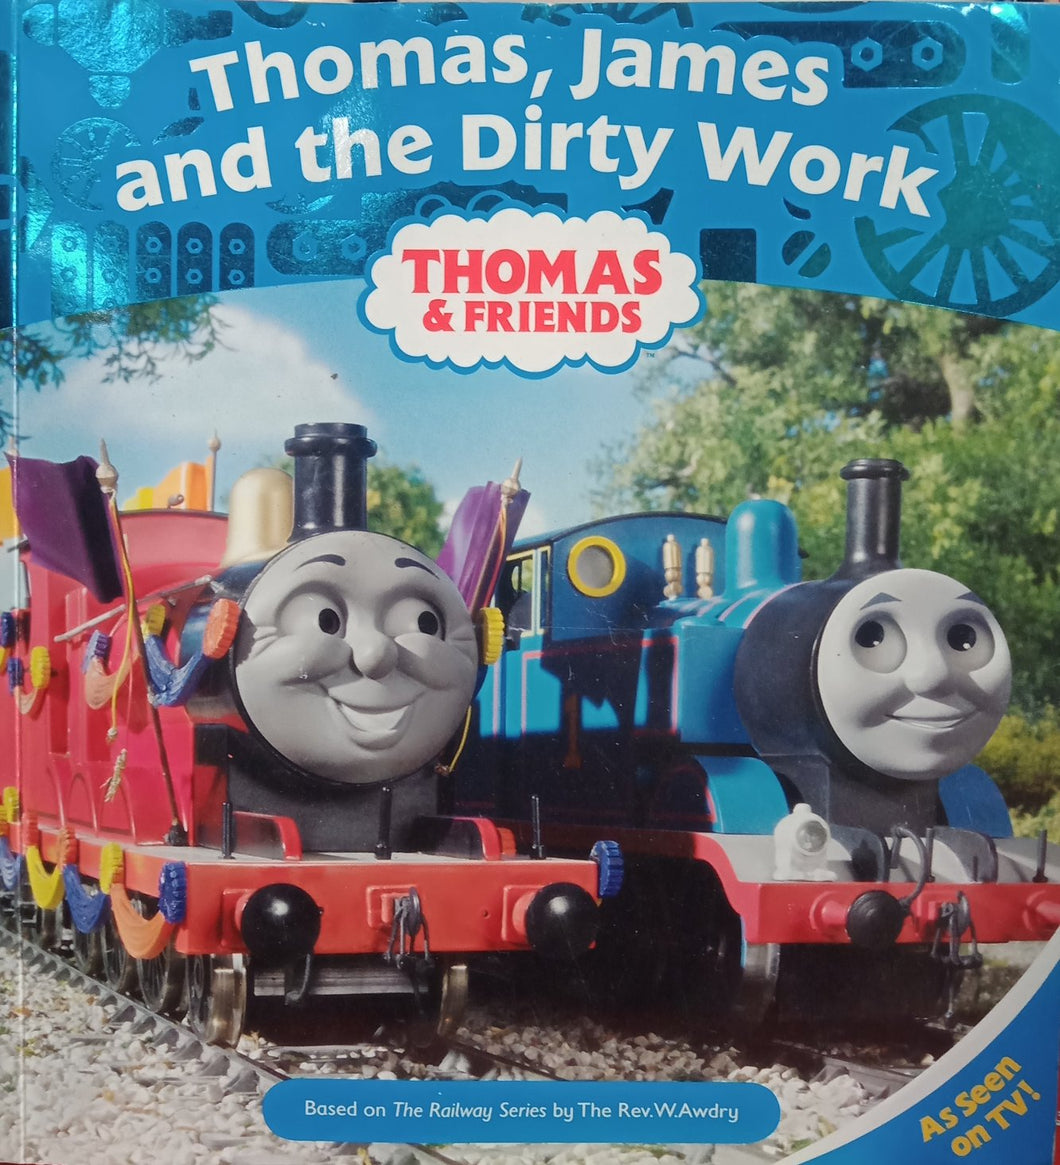 Thomas, James and the Dirty Work Thomas and Friends